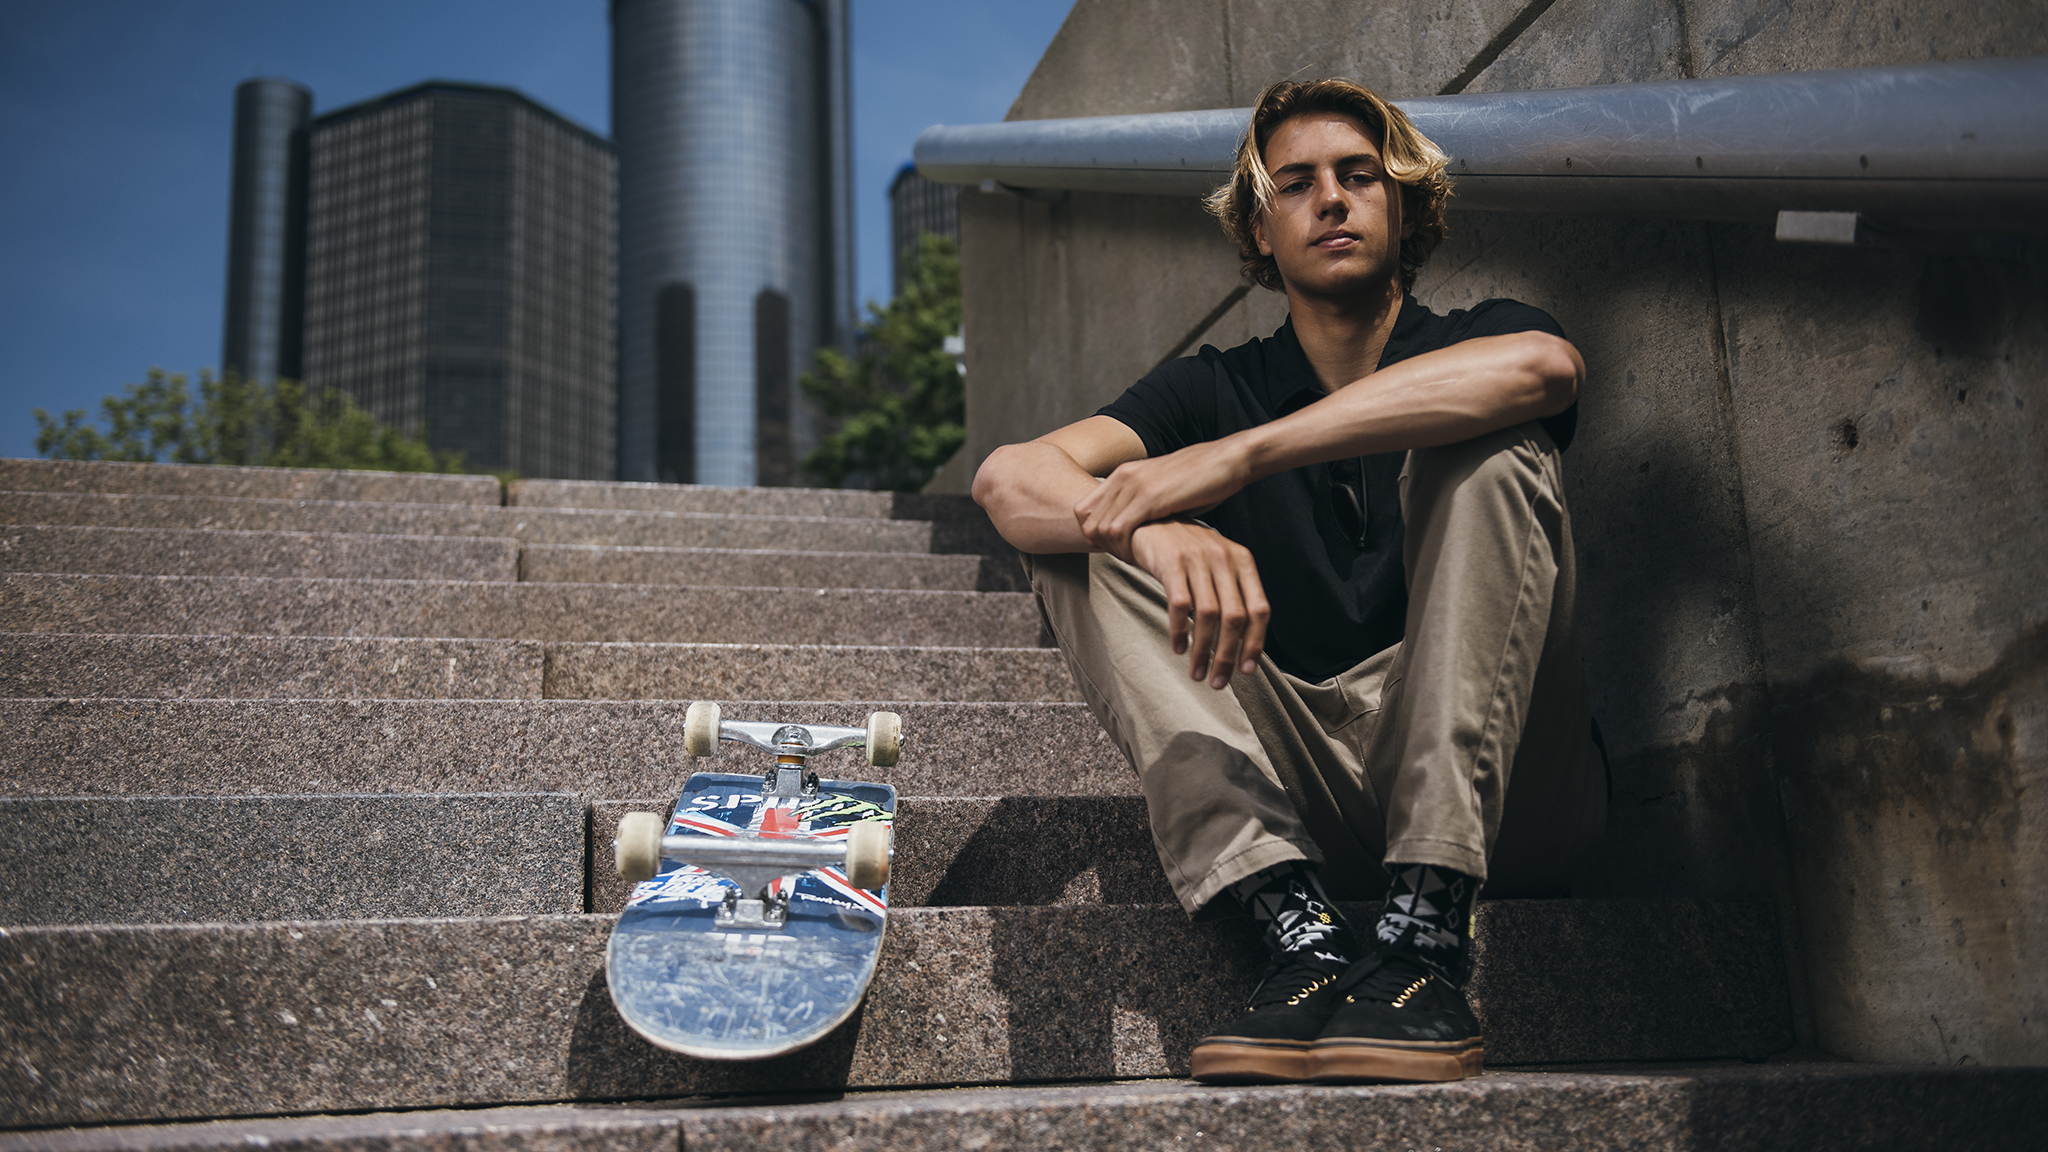 Men's Street: Curren Caples